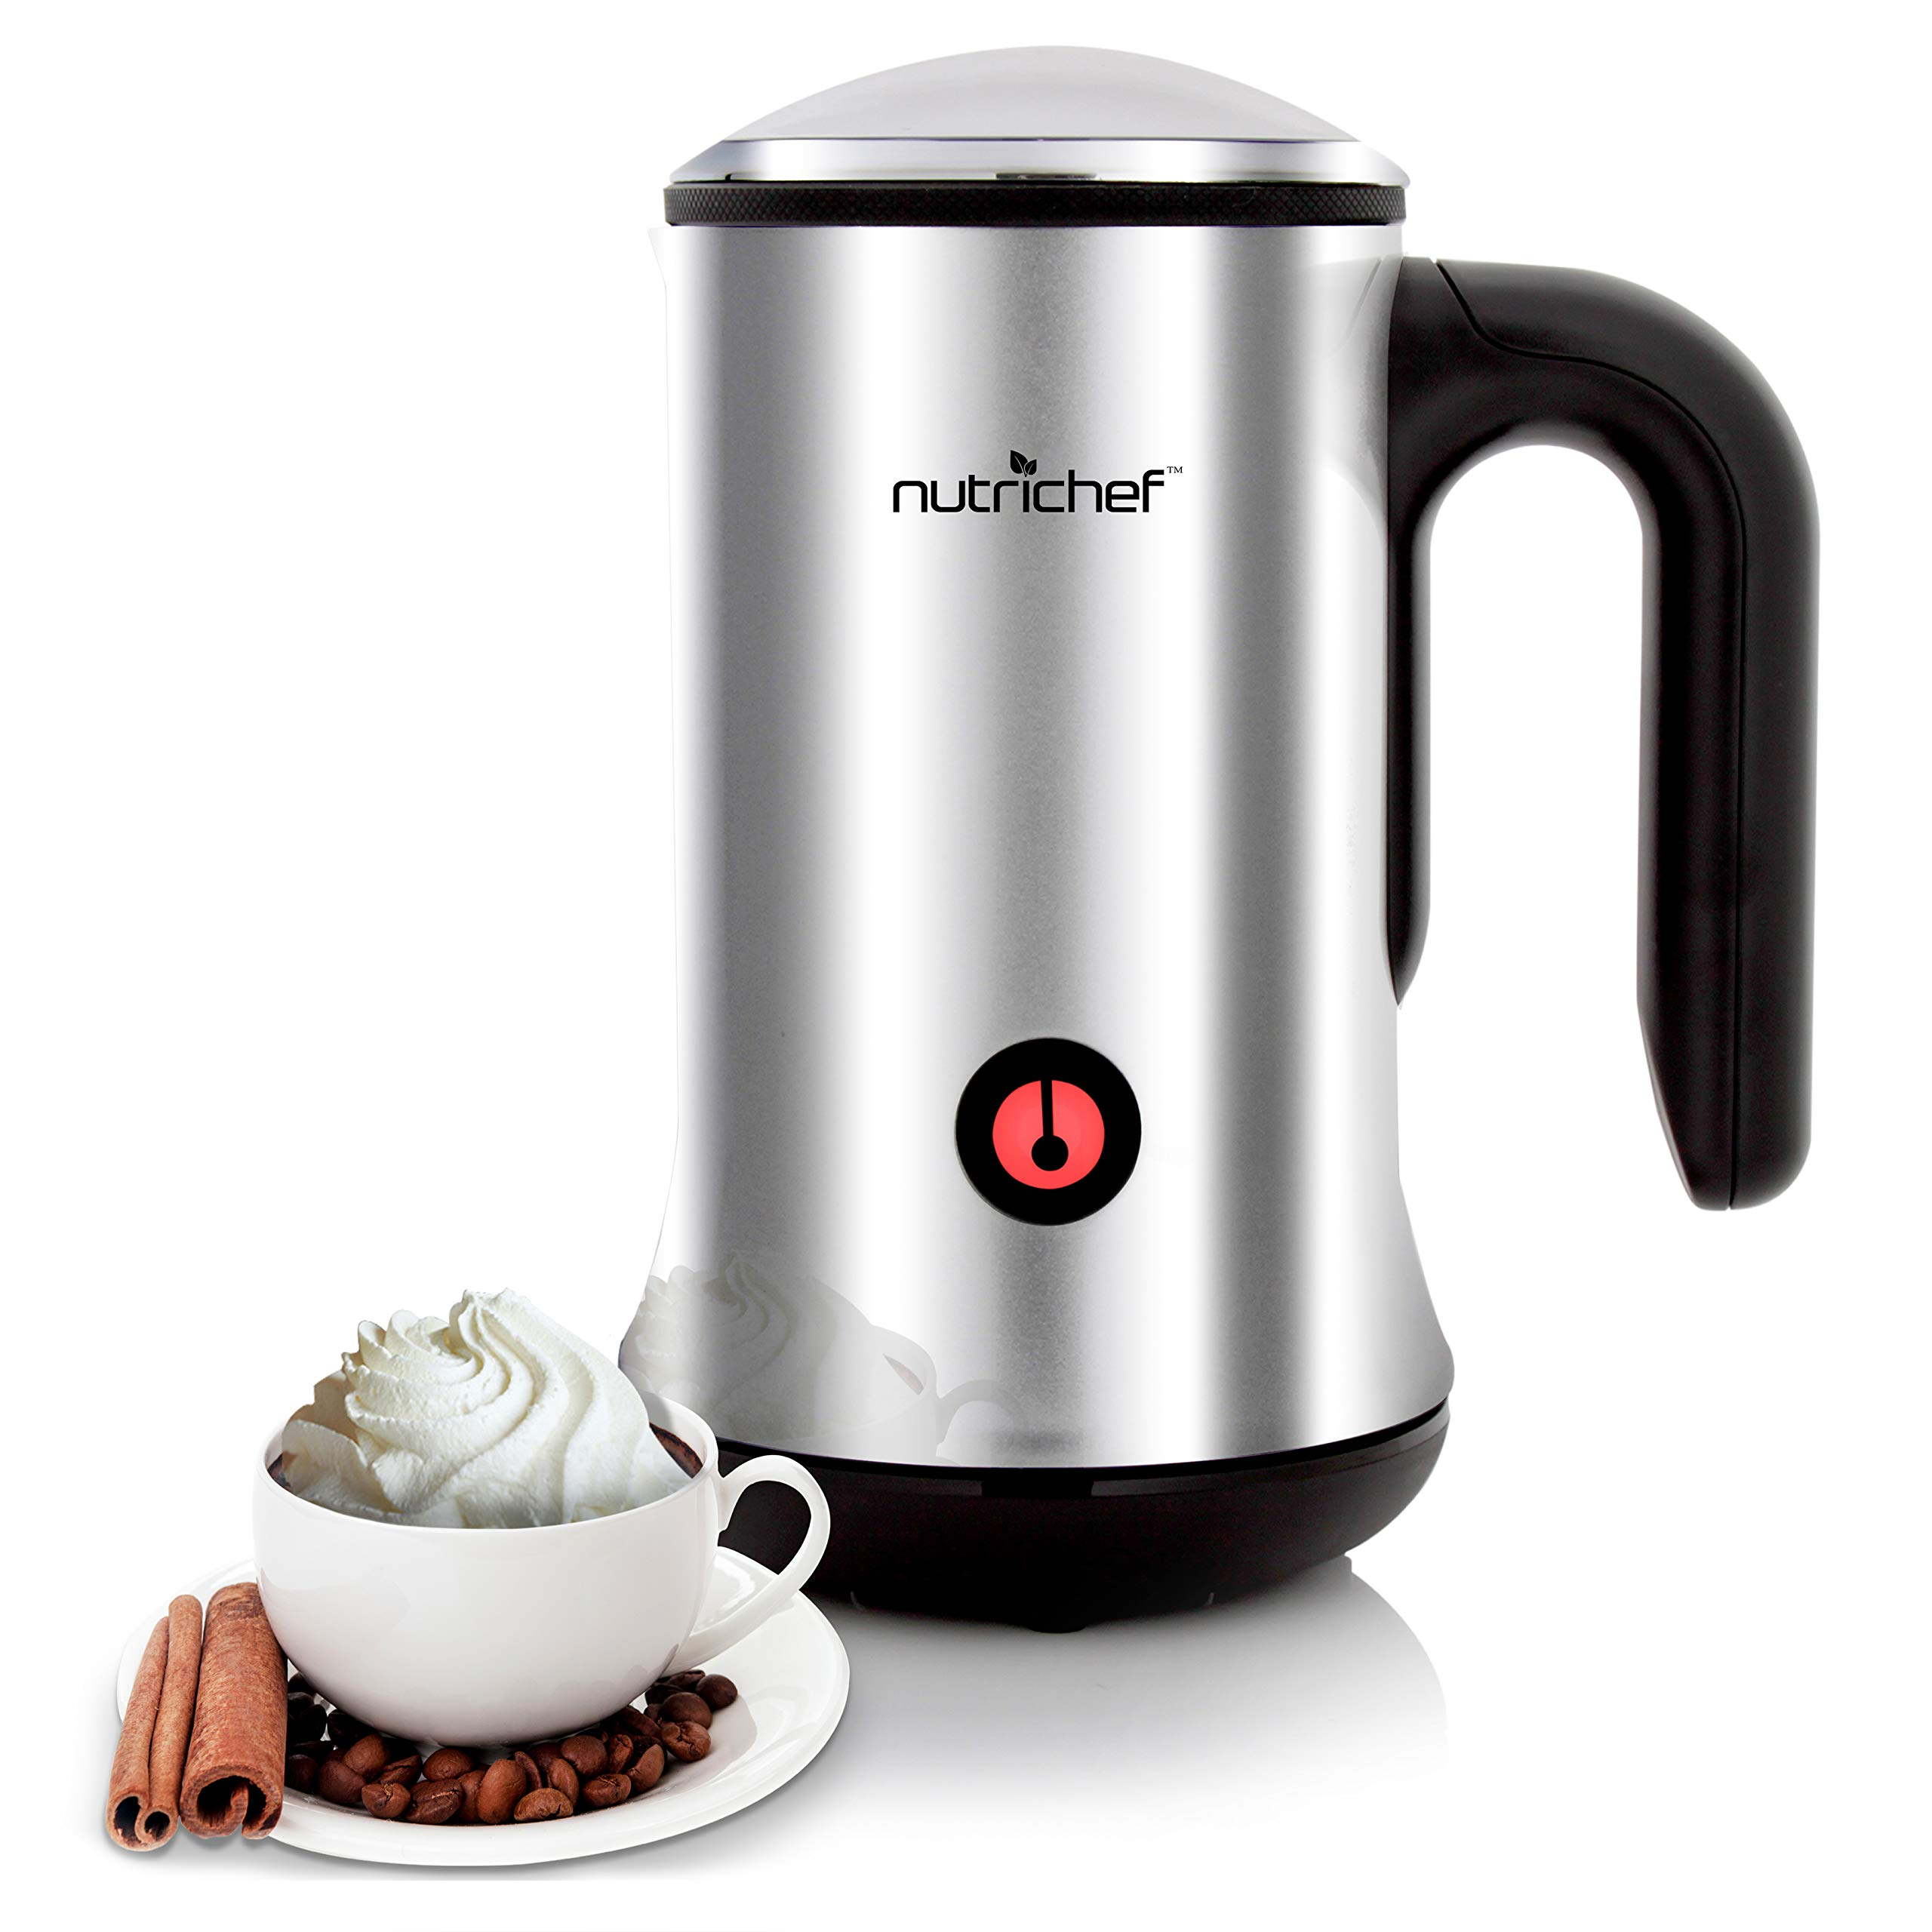 Electric Milk Warmer and Frother - 2-in-1 Automatic Hot or Cold Milk Steamer Heater Foamer Blender, Froth Foam Maker for Latte Cappuccino Coffee Drink, Silver Stainless Steel - NutriChef PKNESPRESO65